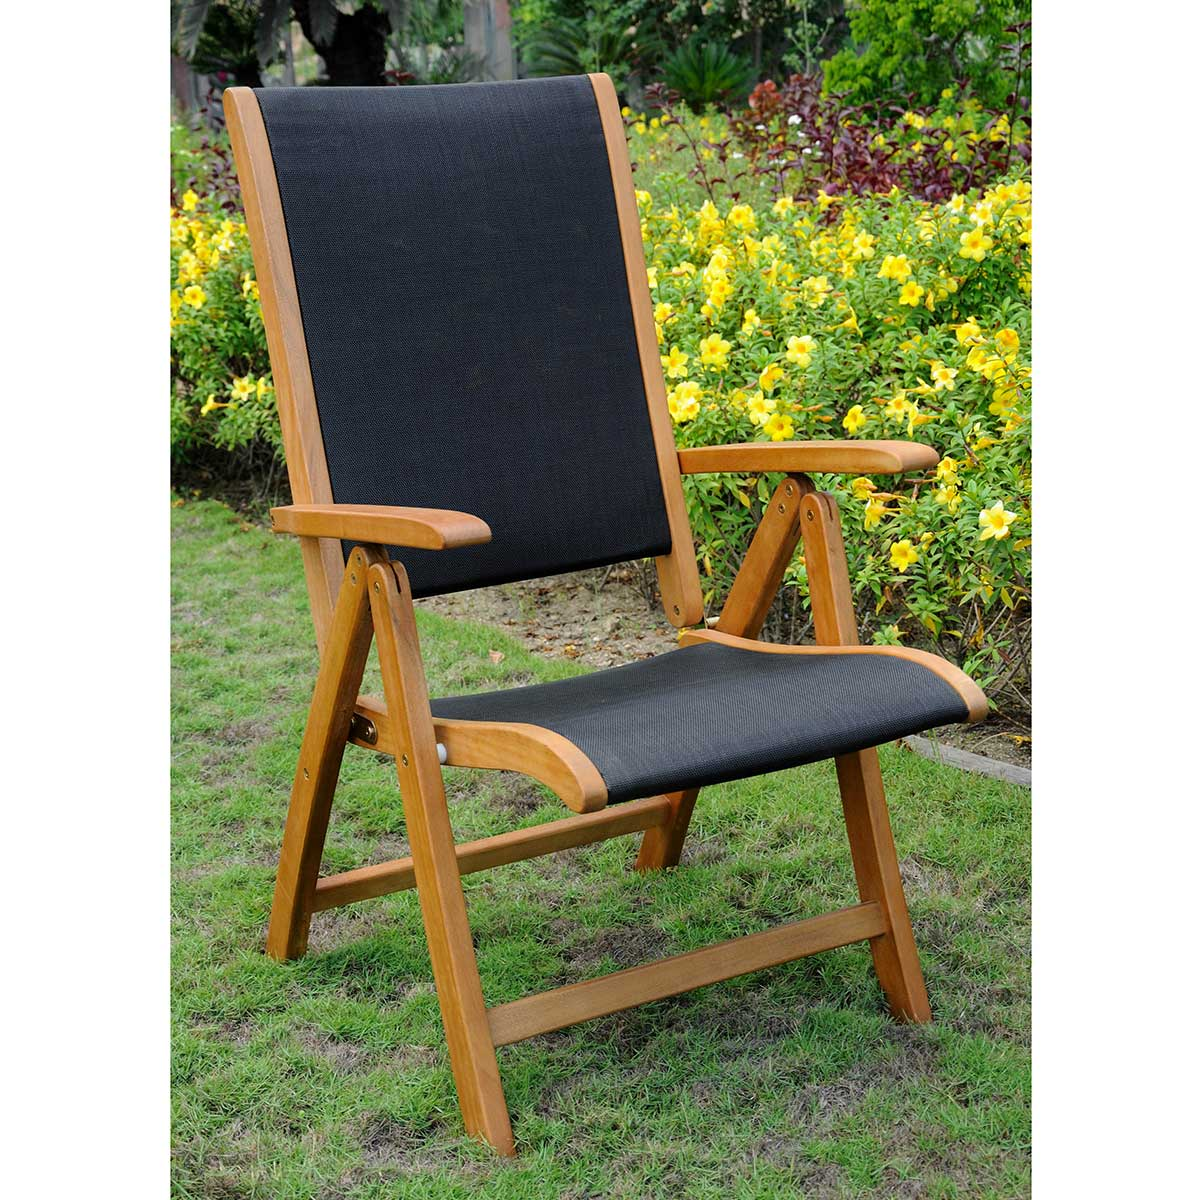 brown wooden folding chairs fire pit with international caravan royal tahiti set of two 5 position